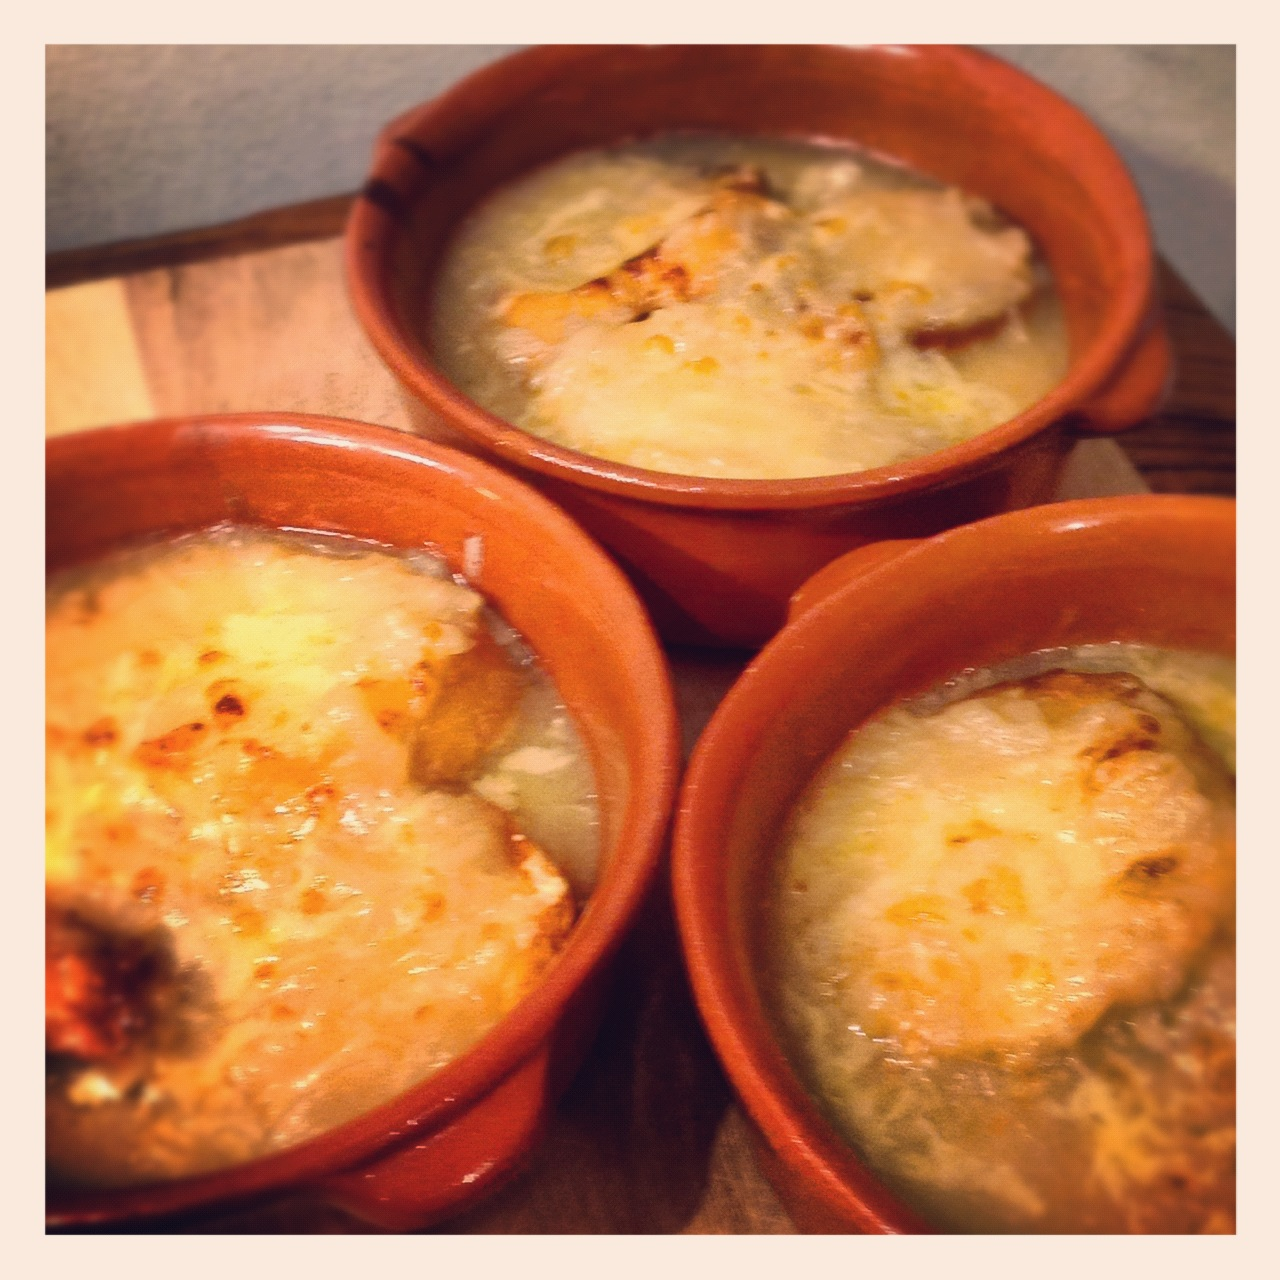 <br />Pour the soup into the bowls and add some cheese on the top of the soup. Cook in the oven for about 10 minutes to create a golden crust.